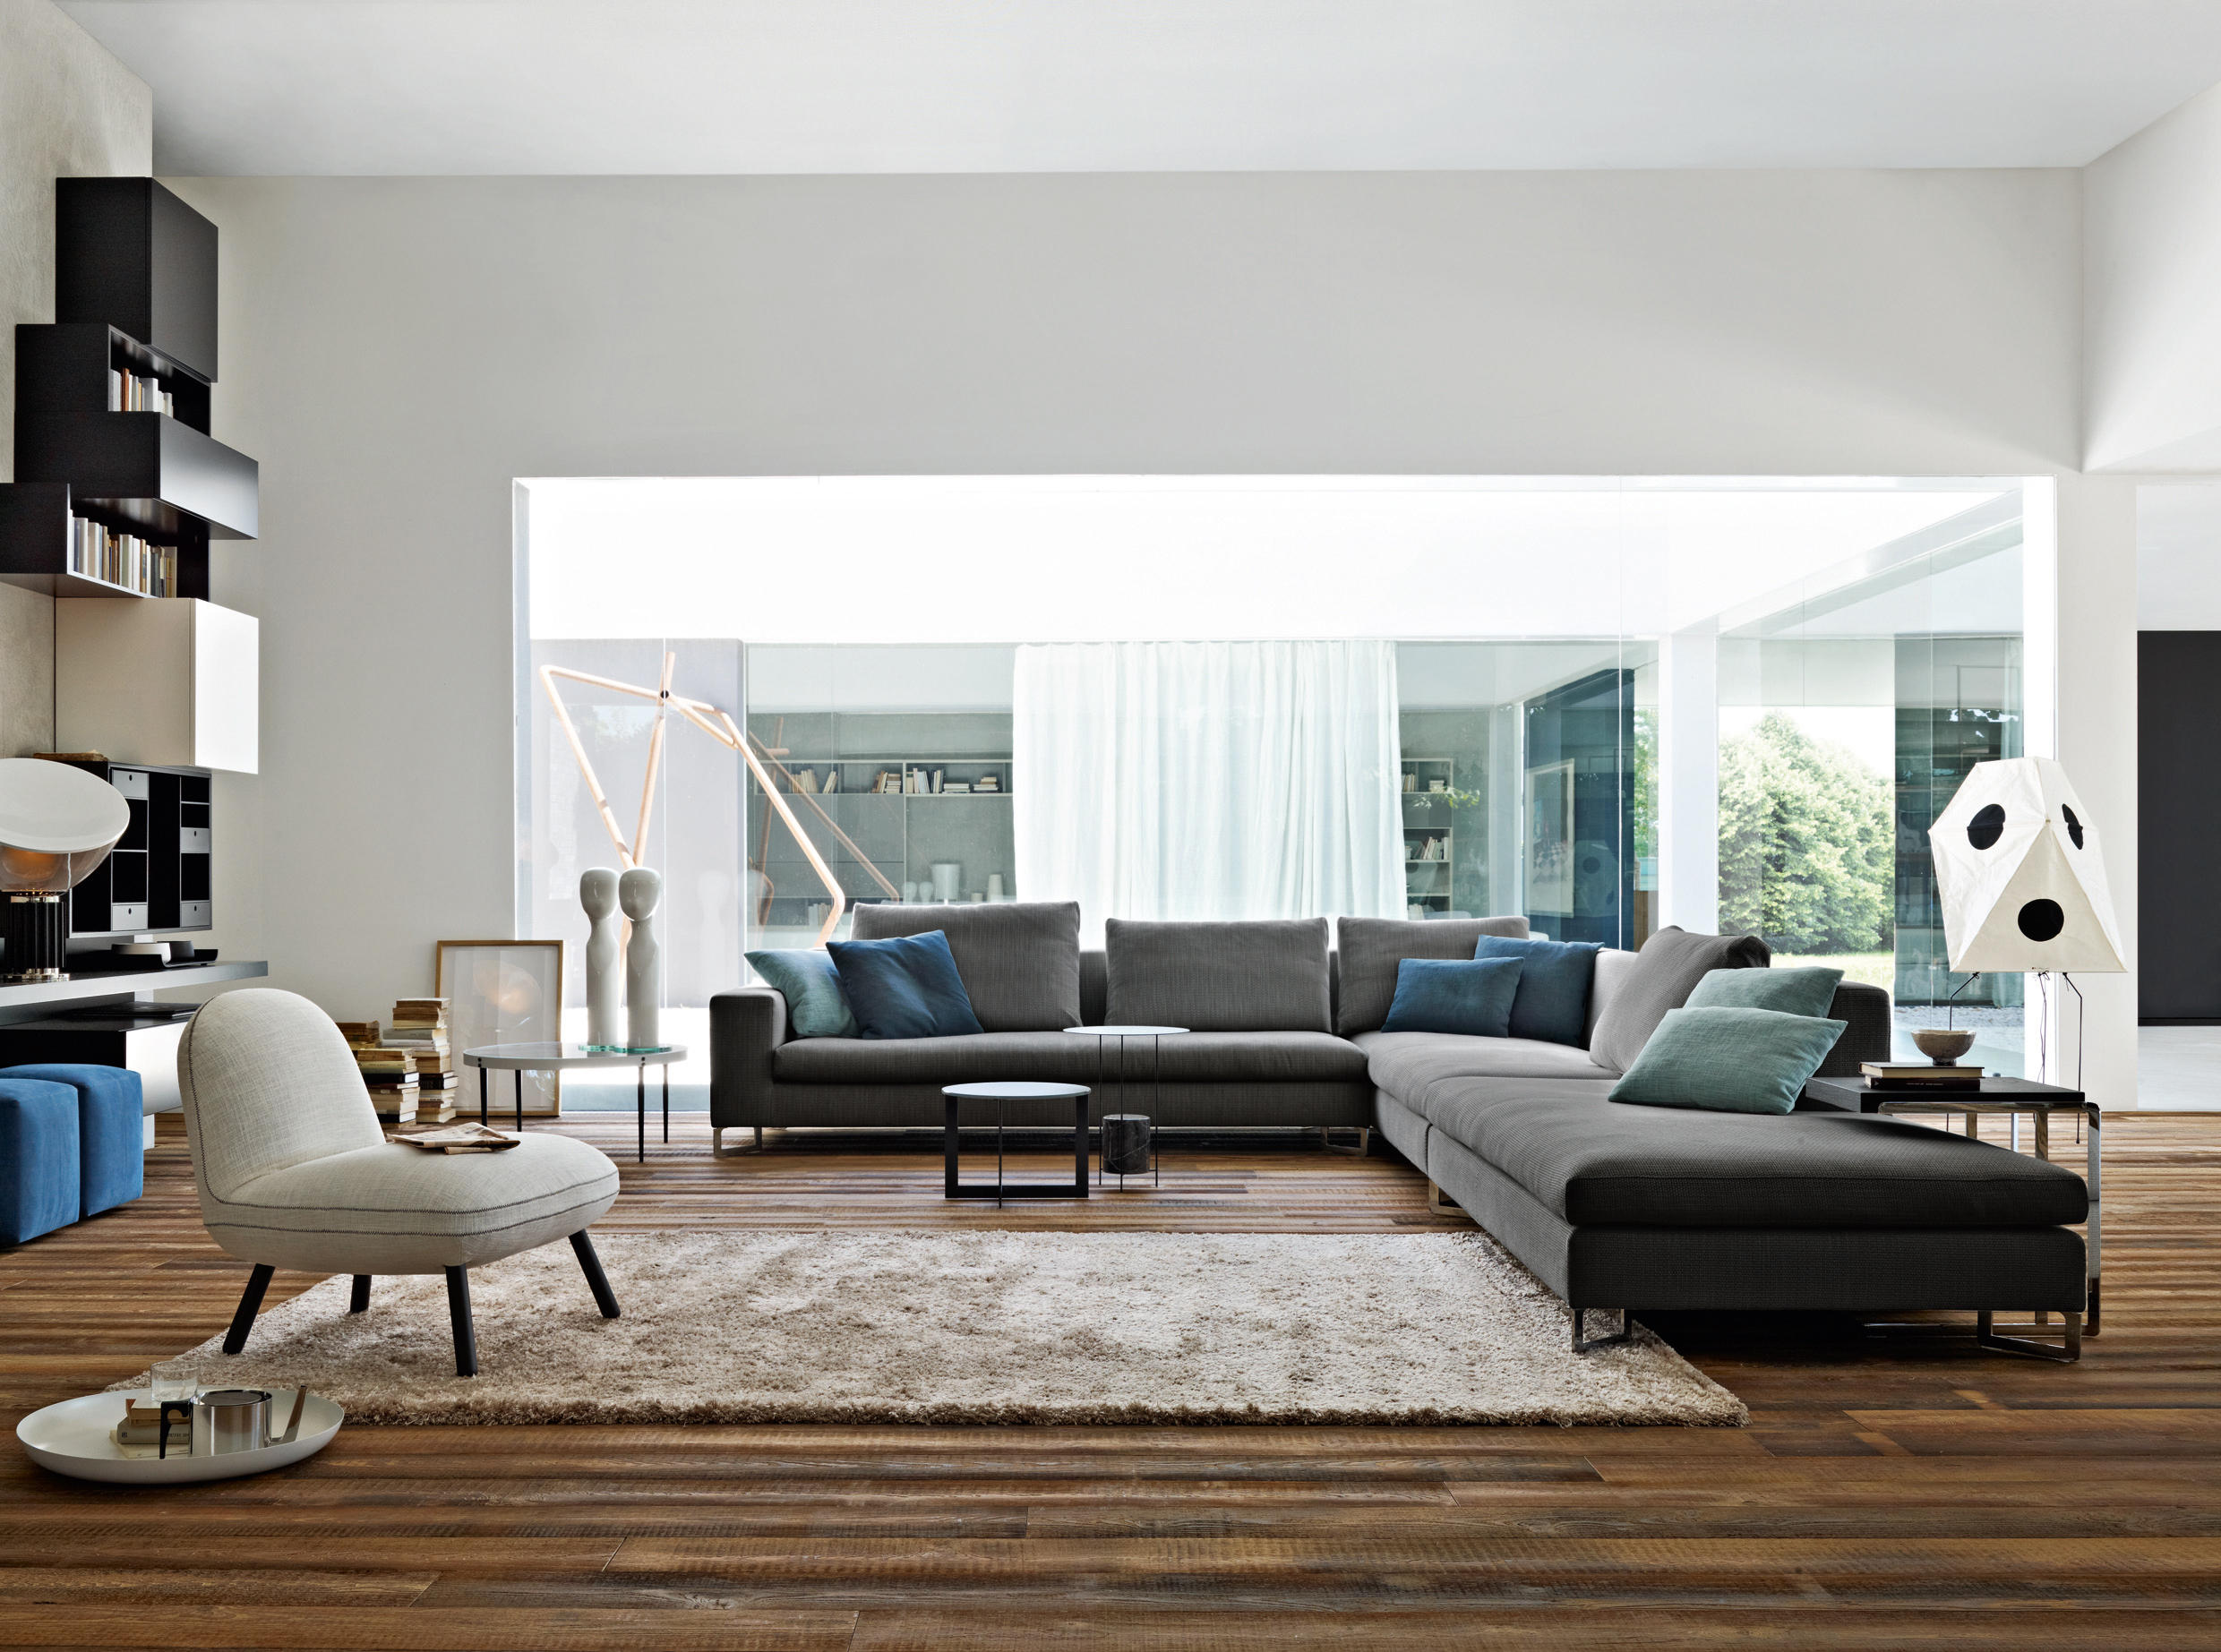 large sofa lounge sofas from molteni c architonic. Black Bedroom Furniture Sets. Home Design Ideas